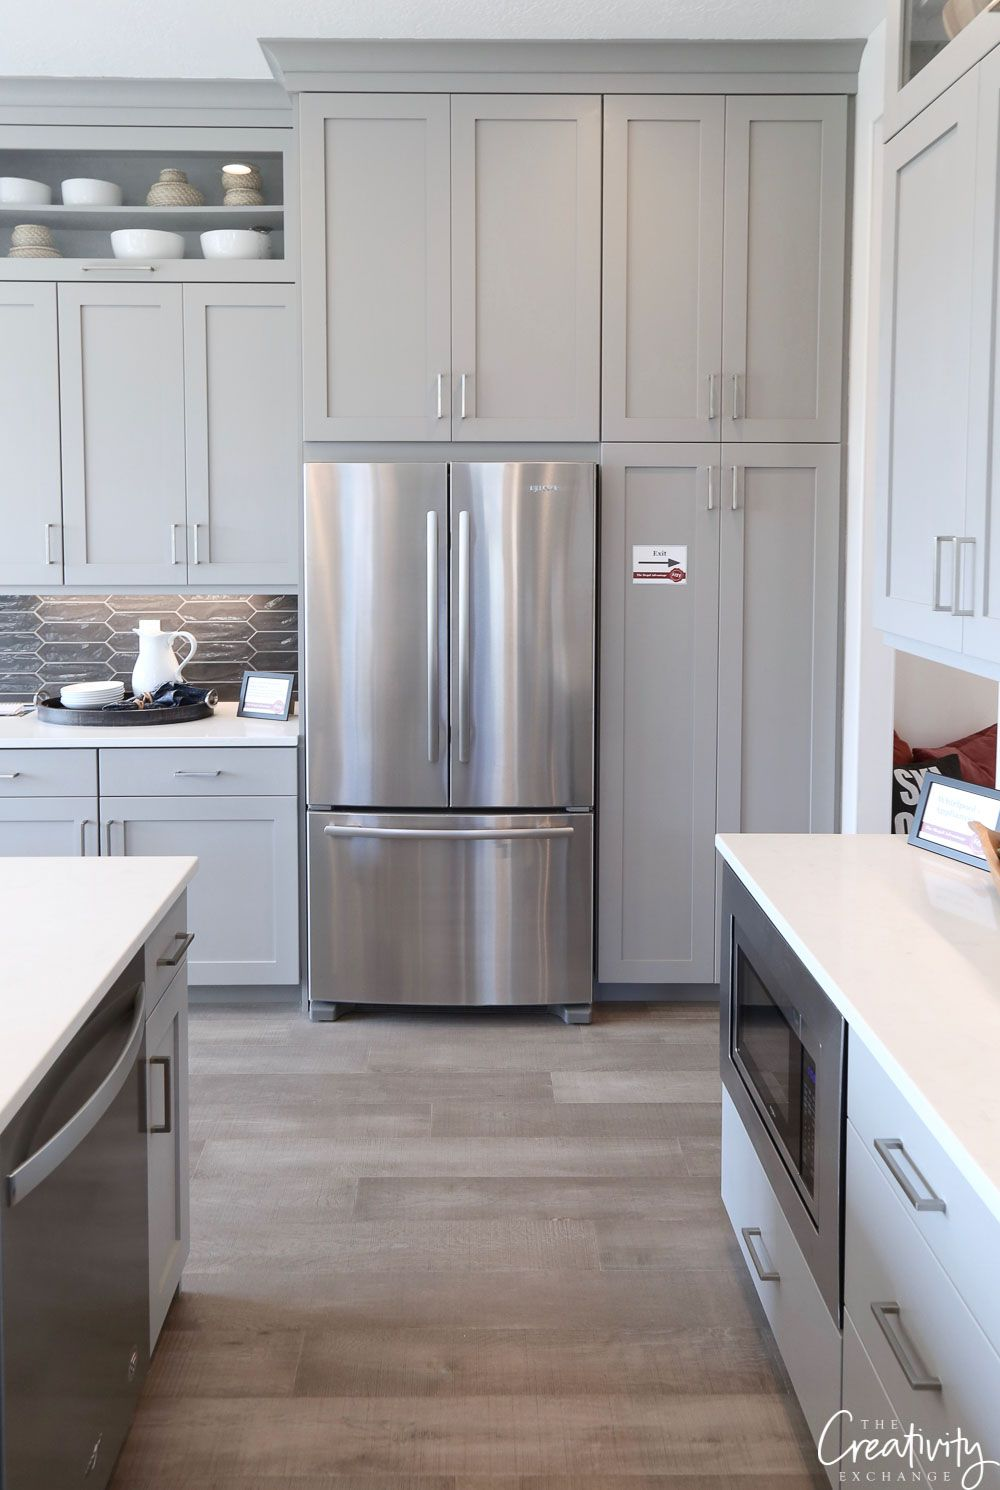 Kitchen Cabinets Painted Grey 2018 Salt Lake City Parade Of Homes Recap Part 2 Paint Colors